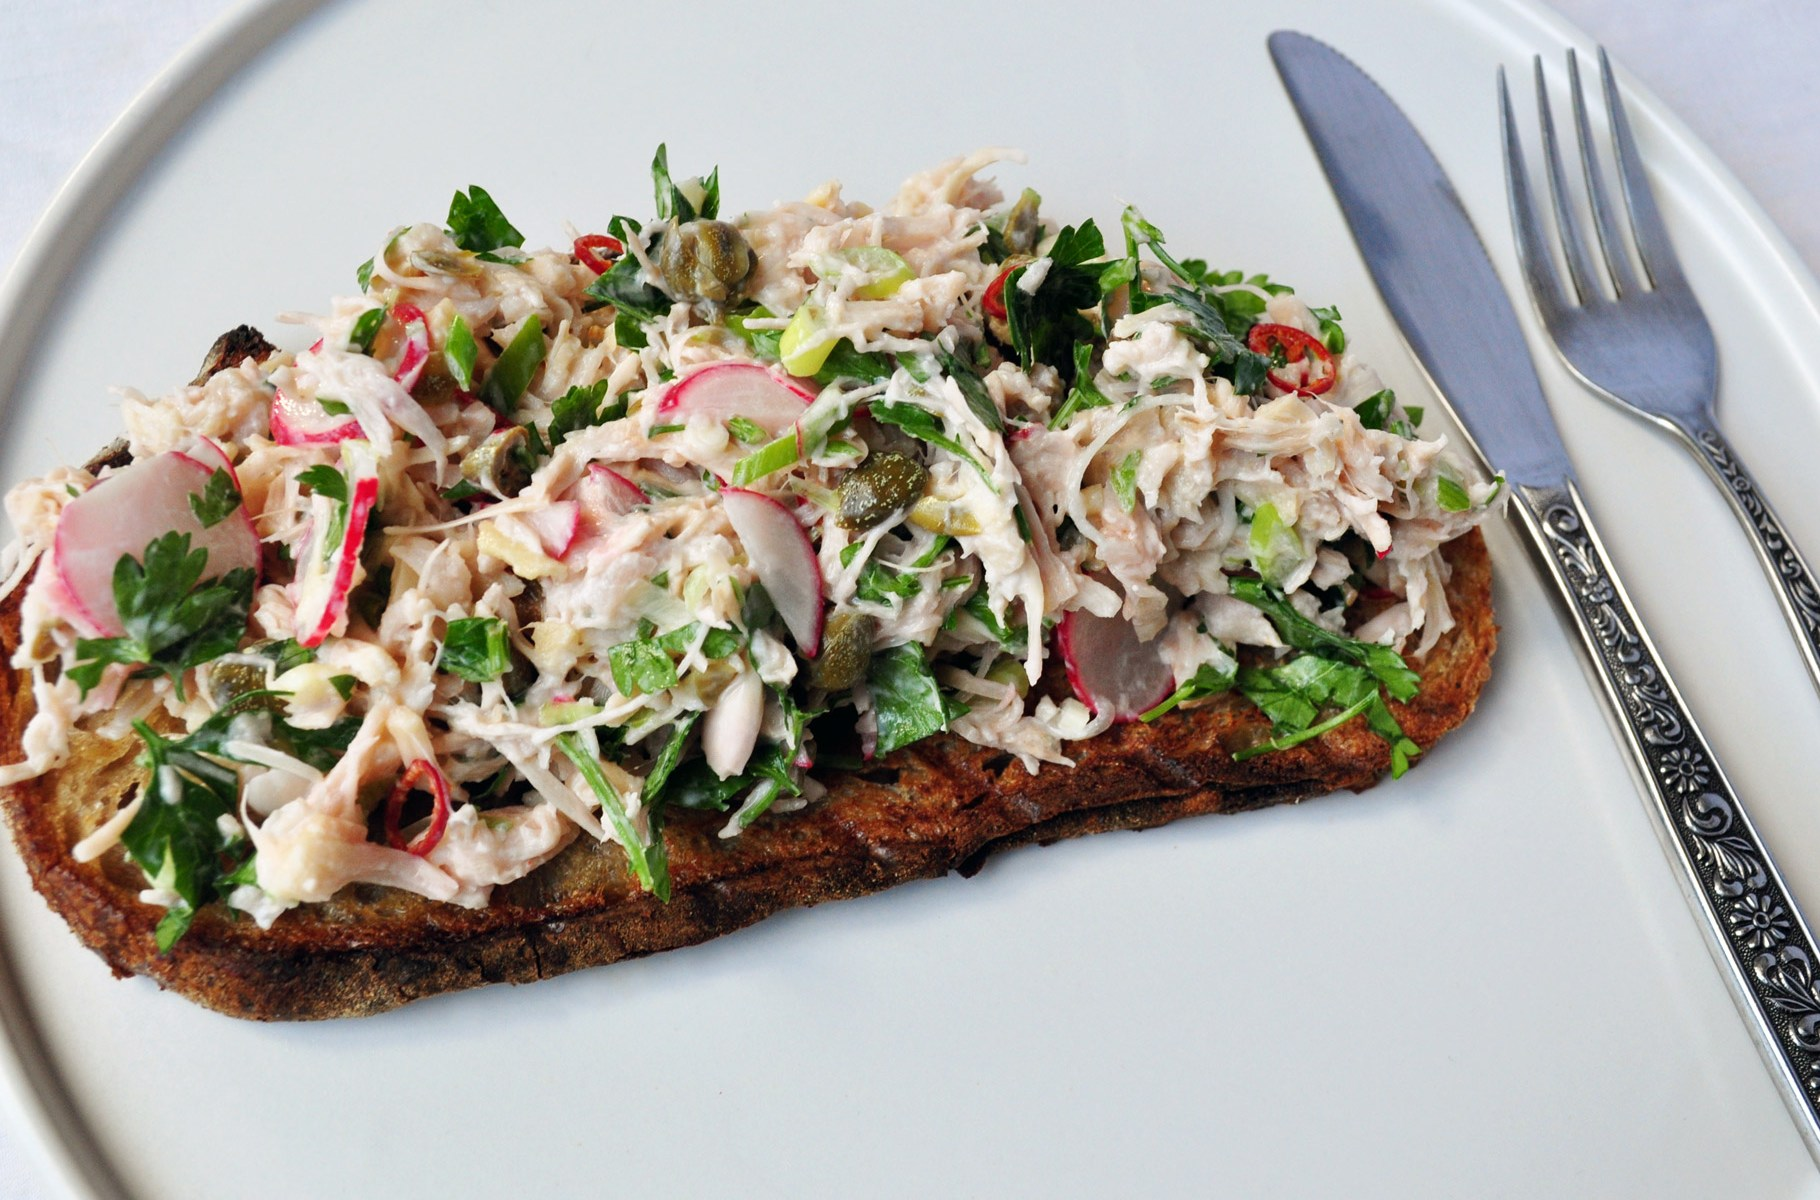 Devilled jackfruit salad on grilled sourdough bread